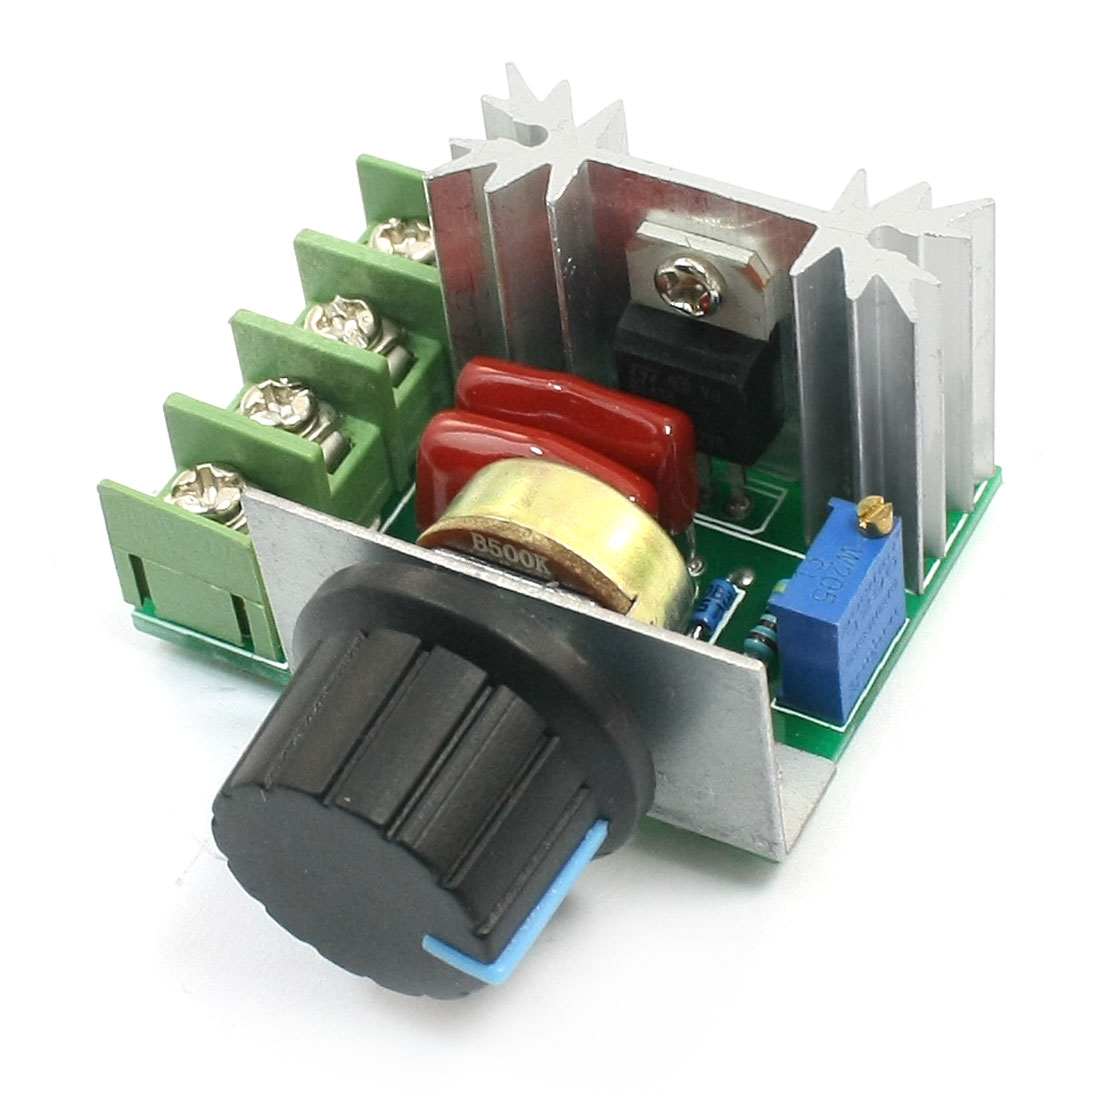 2000W-Adjustable-Voltage-Regulator-220V-High-Power-SCR-Electronic-Controller